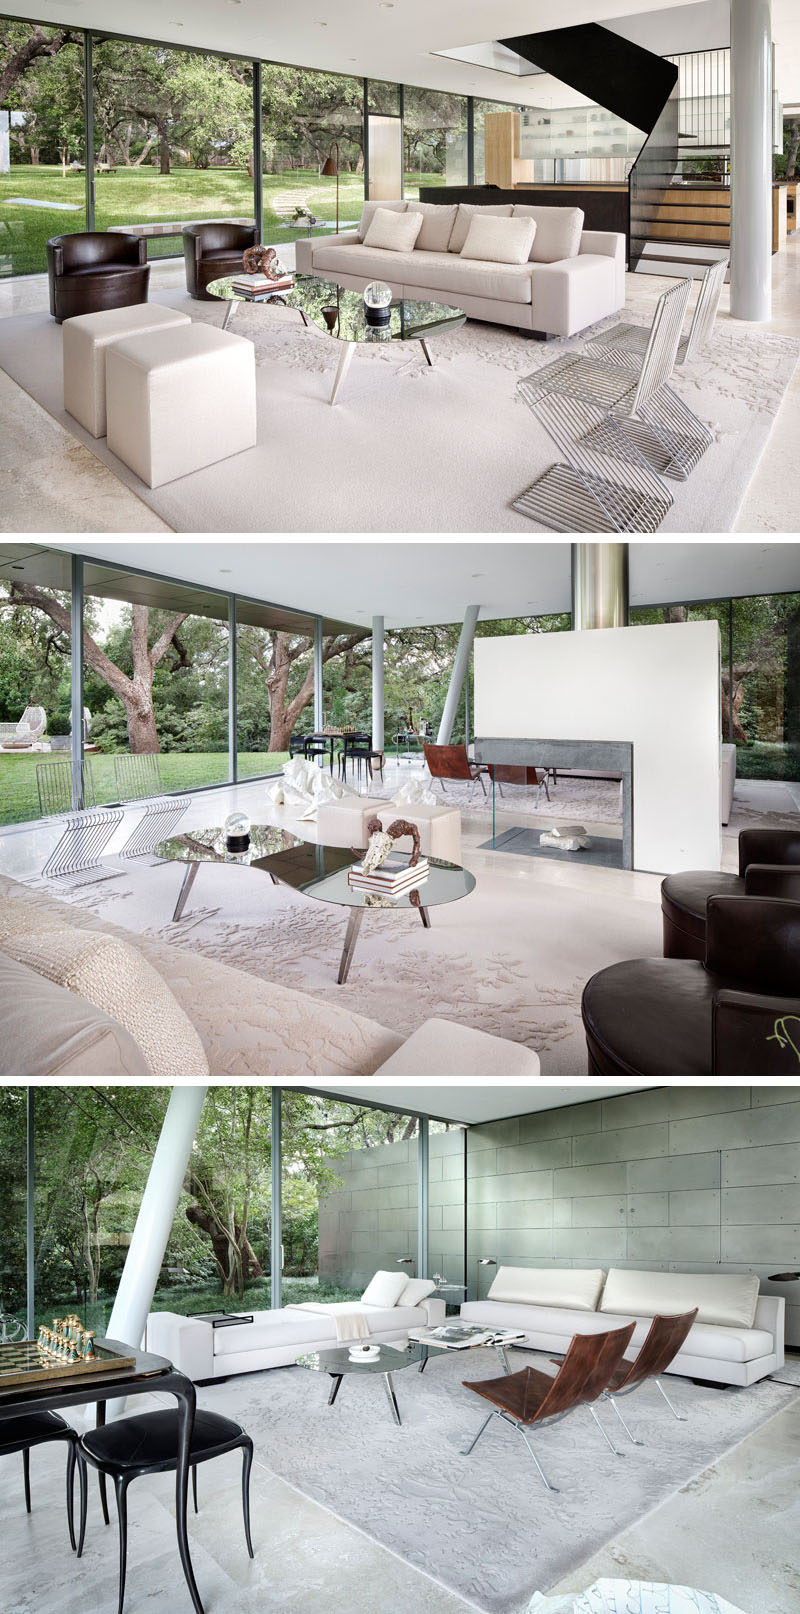 In this modern house there's a double-sided fireplace that can be enjoyed from two different sitting areas.